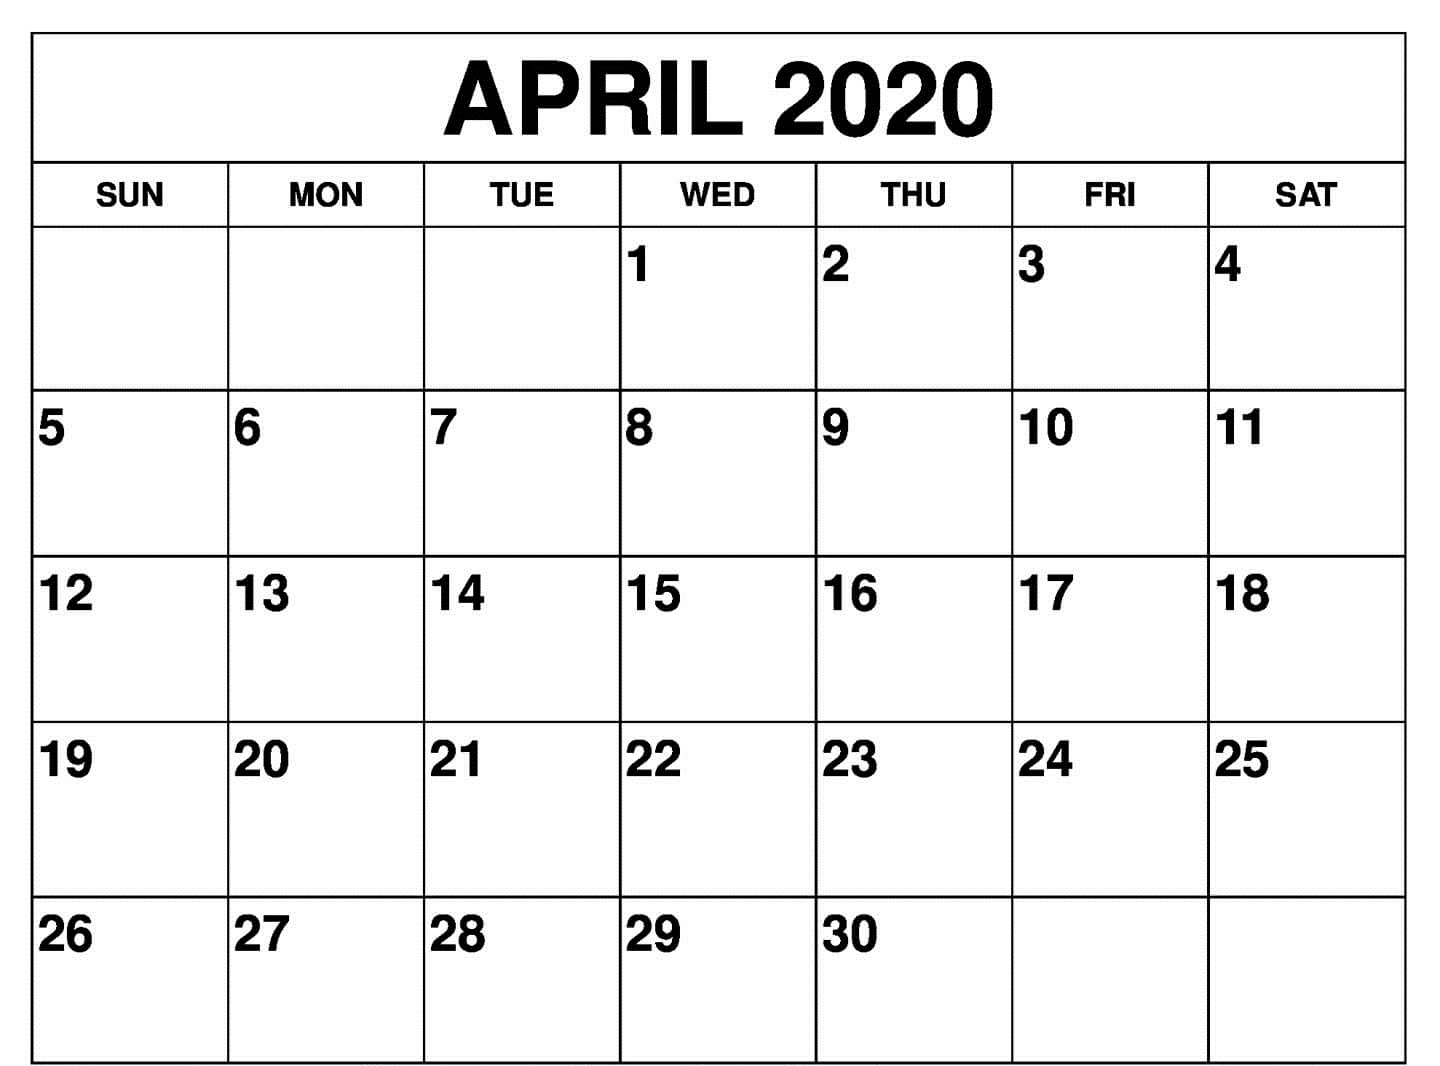 Wallpaper April 2020 Calendar With Holidays